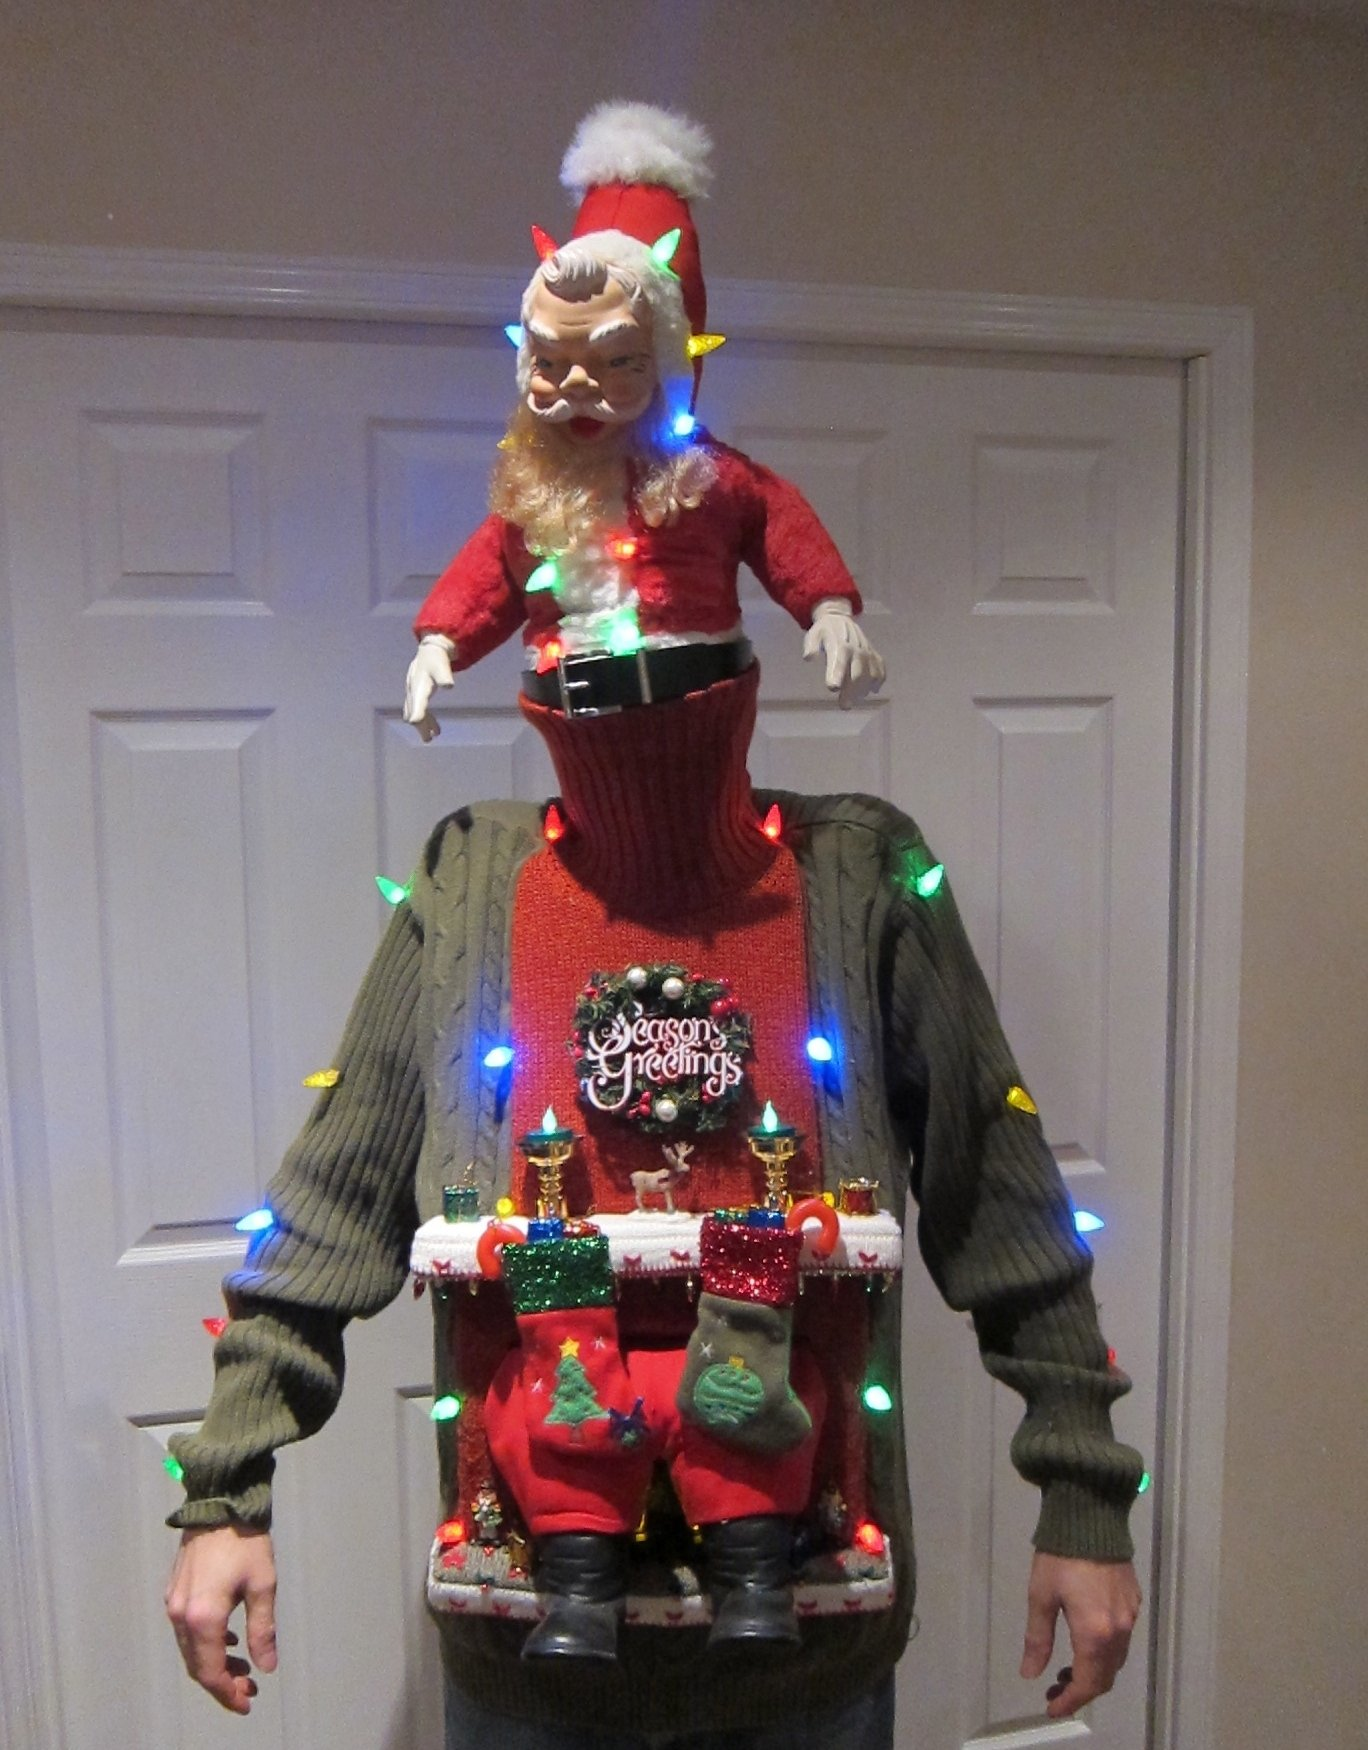 10 Awesome Ugly Christmas Sweater Ideas For Couples 53 diy ugly christmas sweater ideas 7 2020